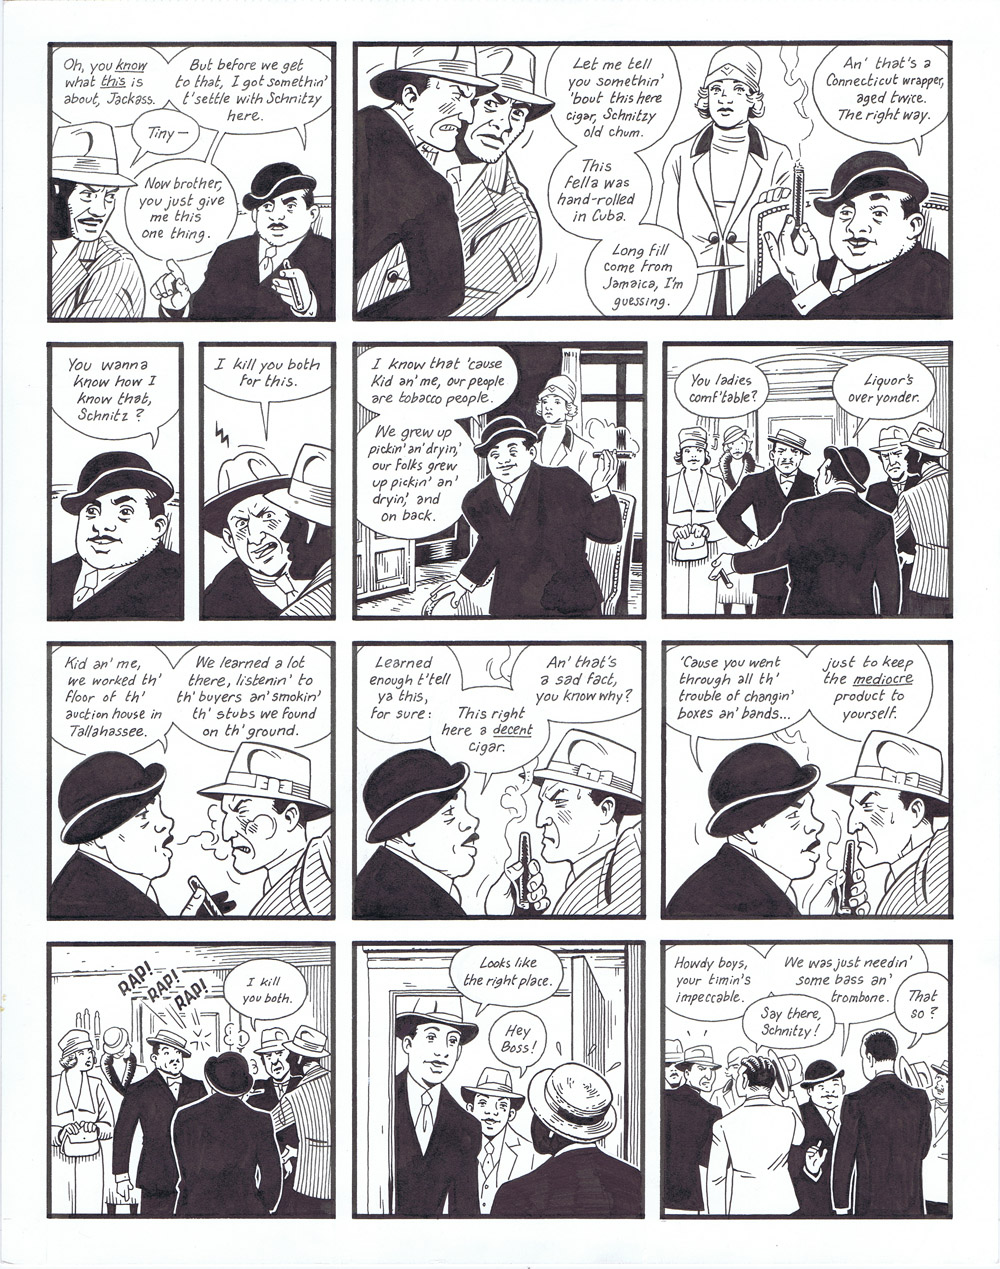 Berlin: Book 2 - page 199